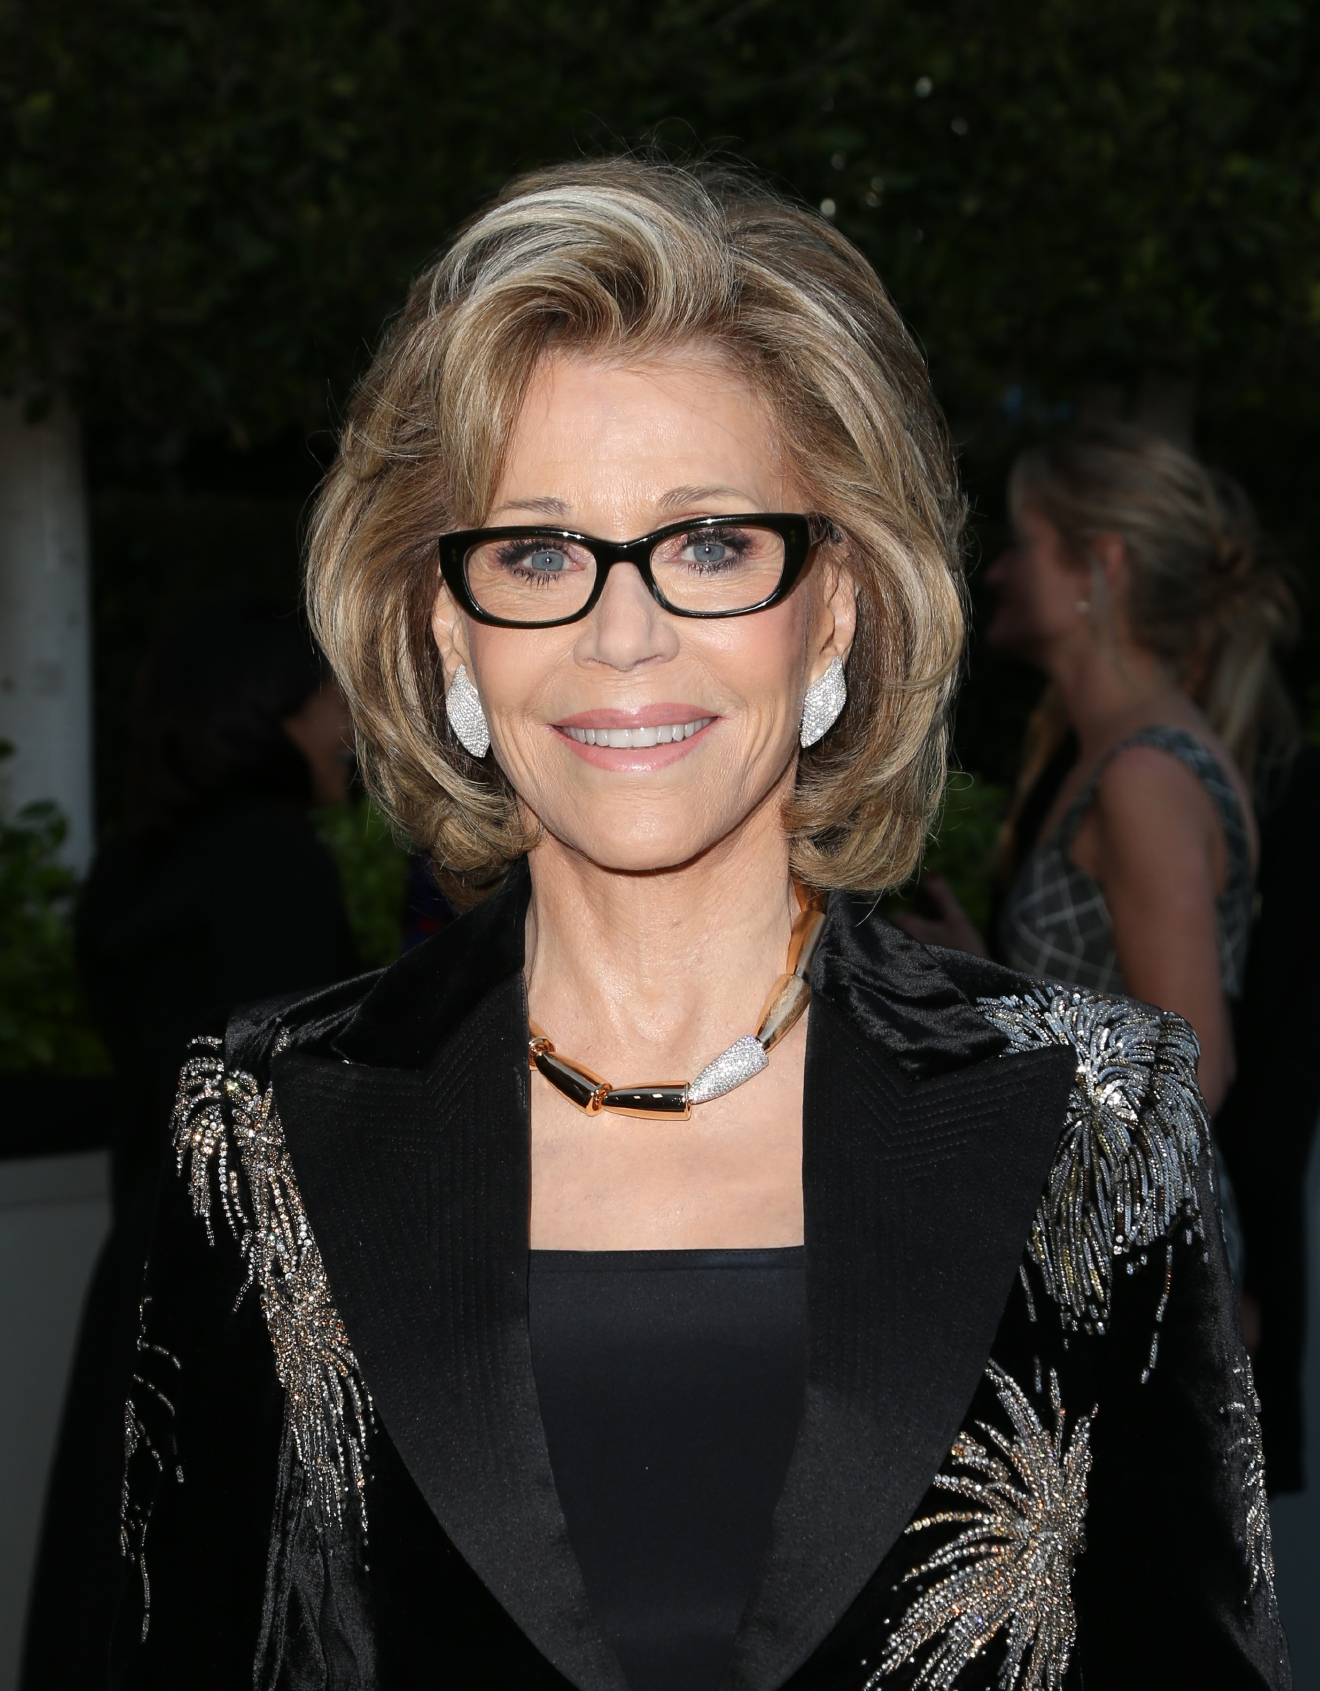 UCLA Institute of the Environment and Sustainability Celebrates the Champions of Our Planet's Future  Featuring: Jane Fonda Where: Beverly Hills, California, United States When: 24 Mar 2016 Credit: FayesVision/WENN.com